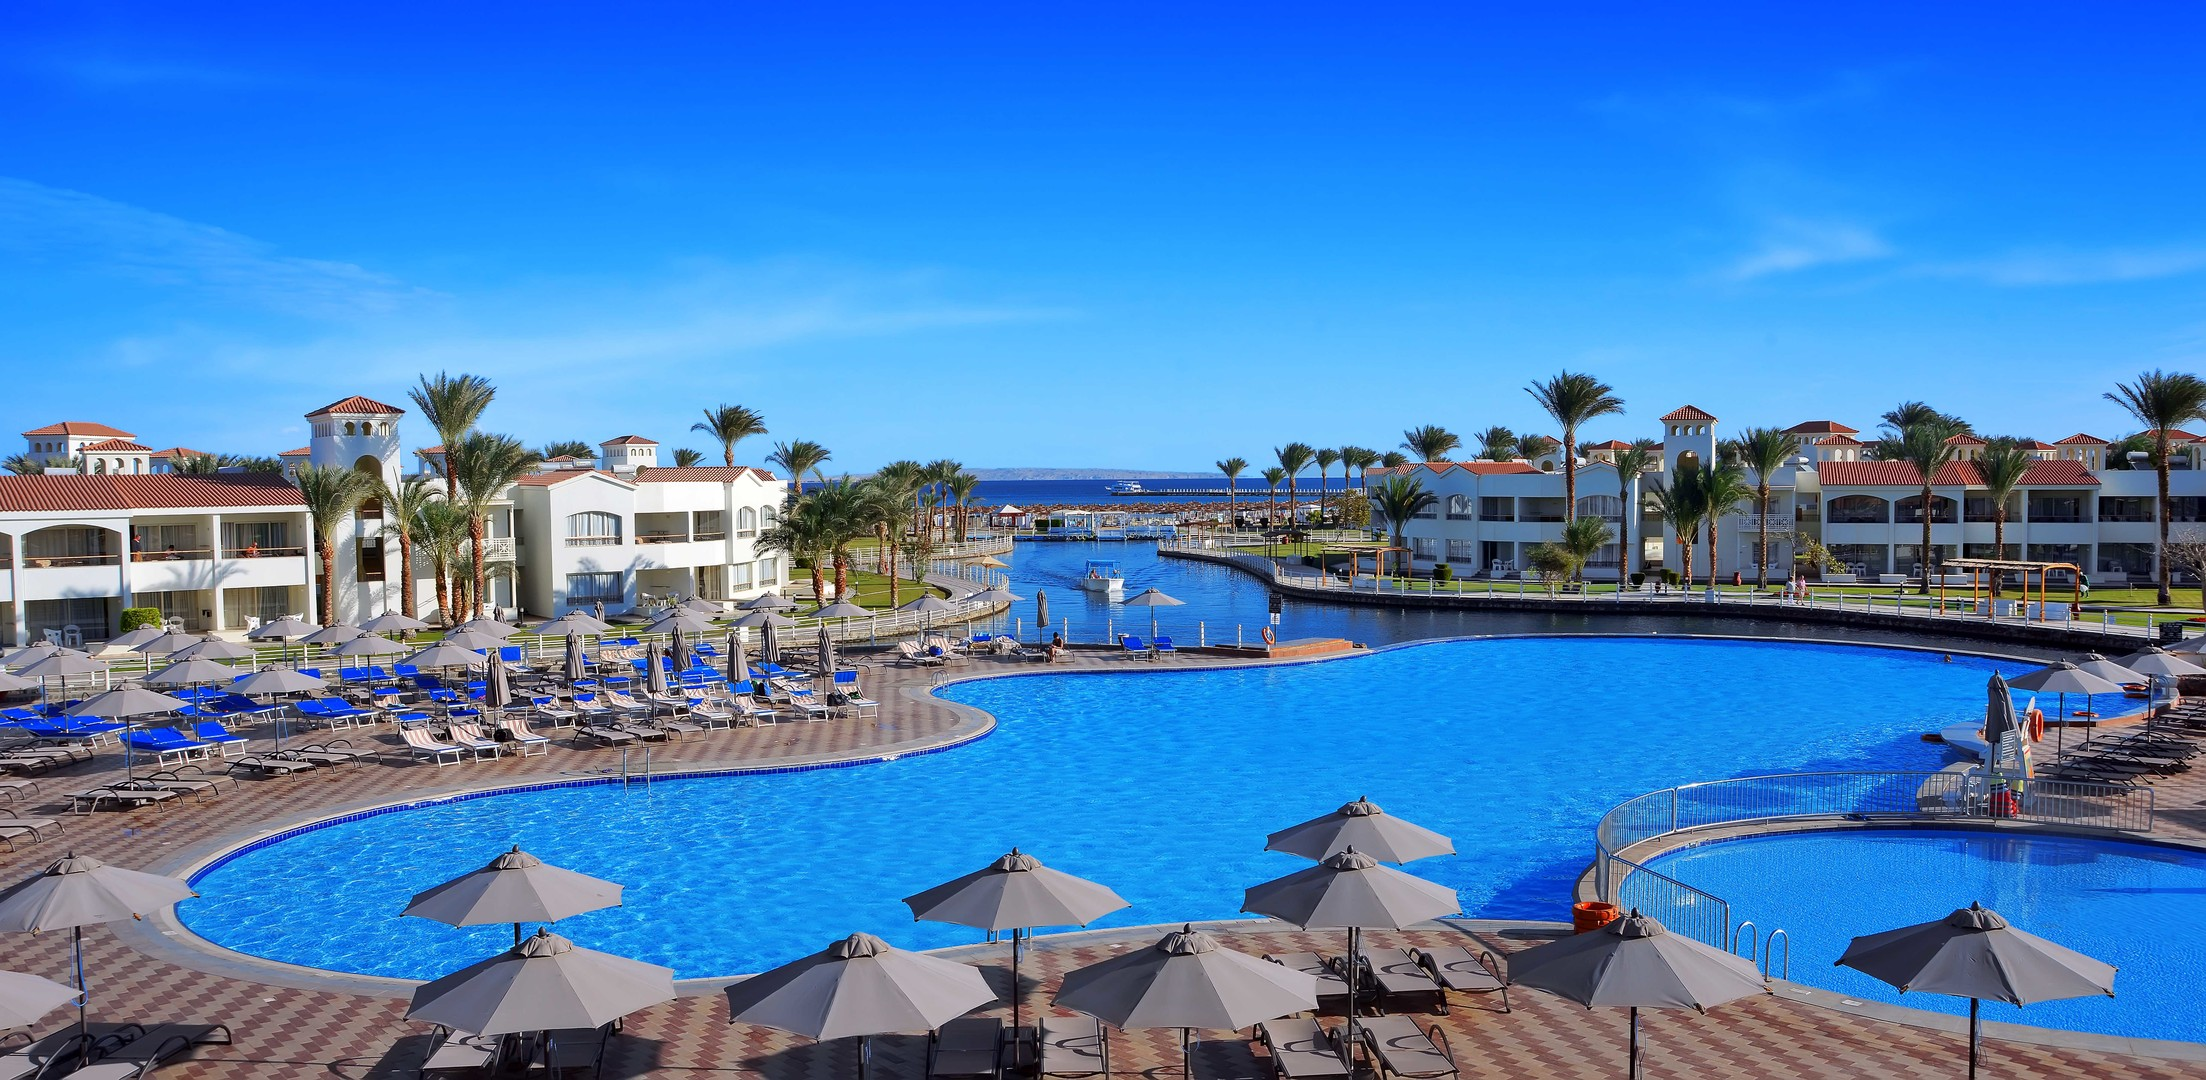 Hotel Pickalbatros - Dana Beach Resort